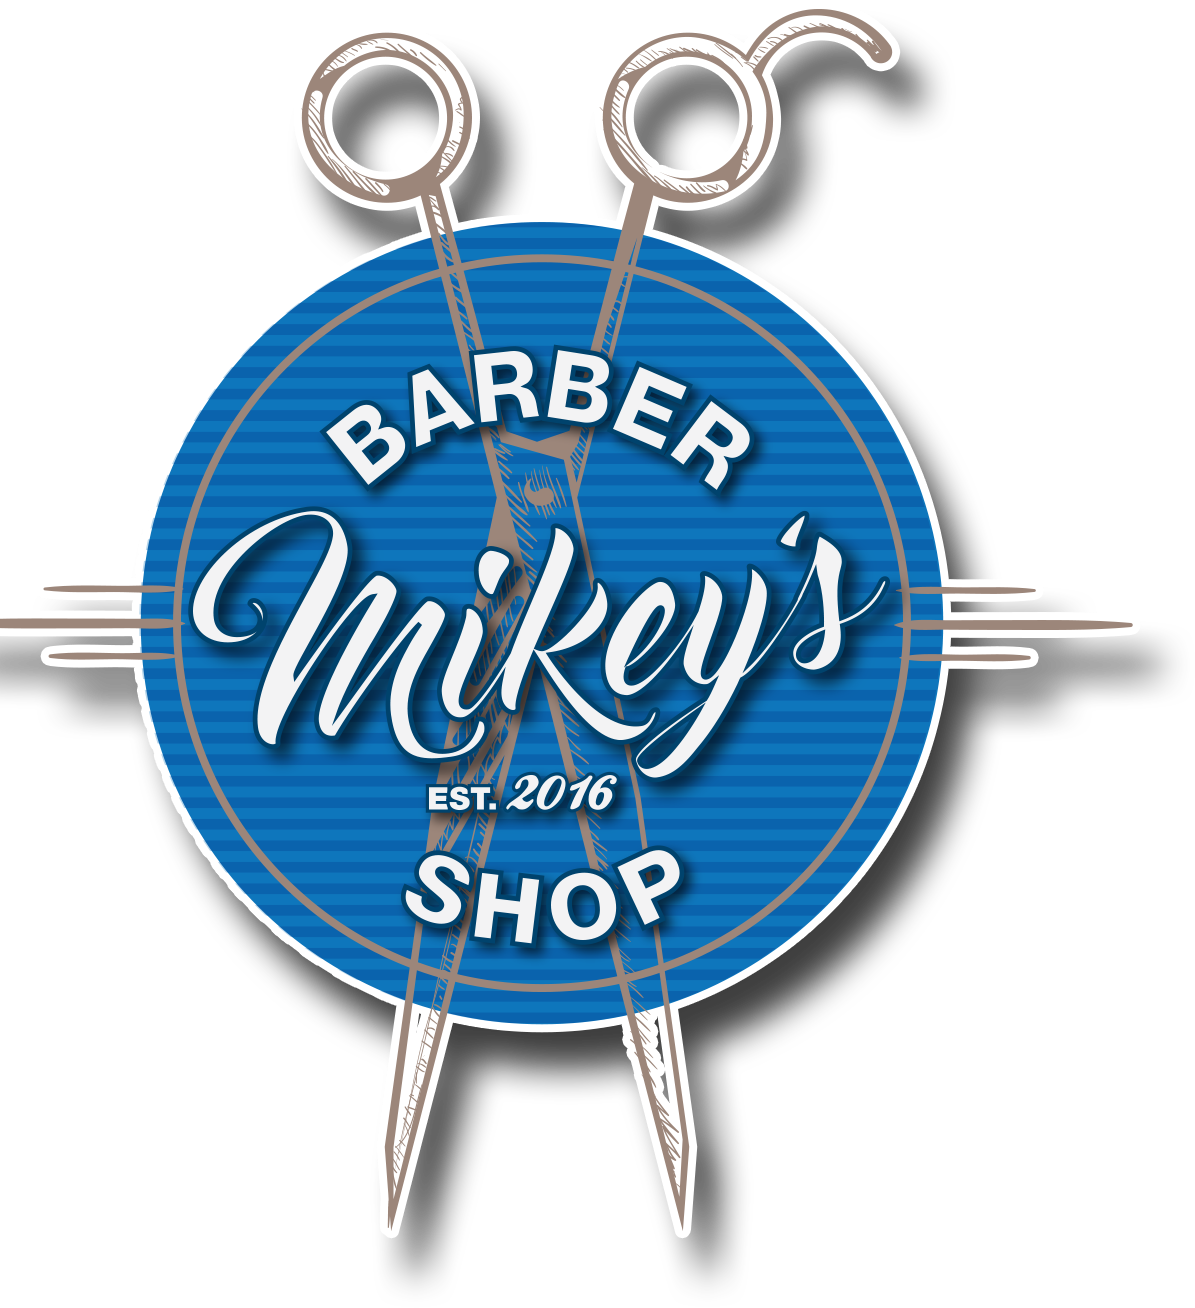 Mikey's Barber Shop